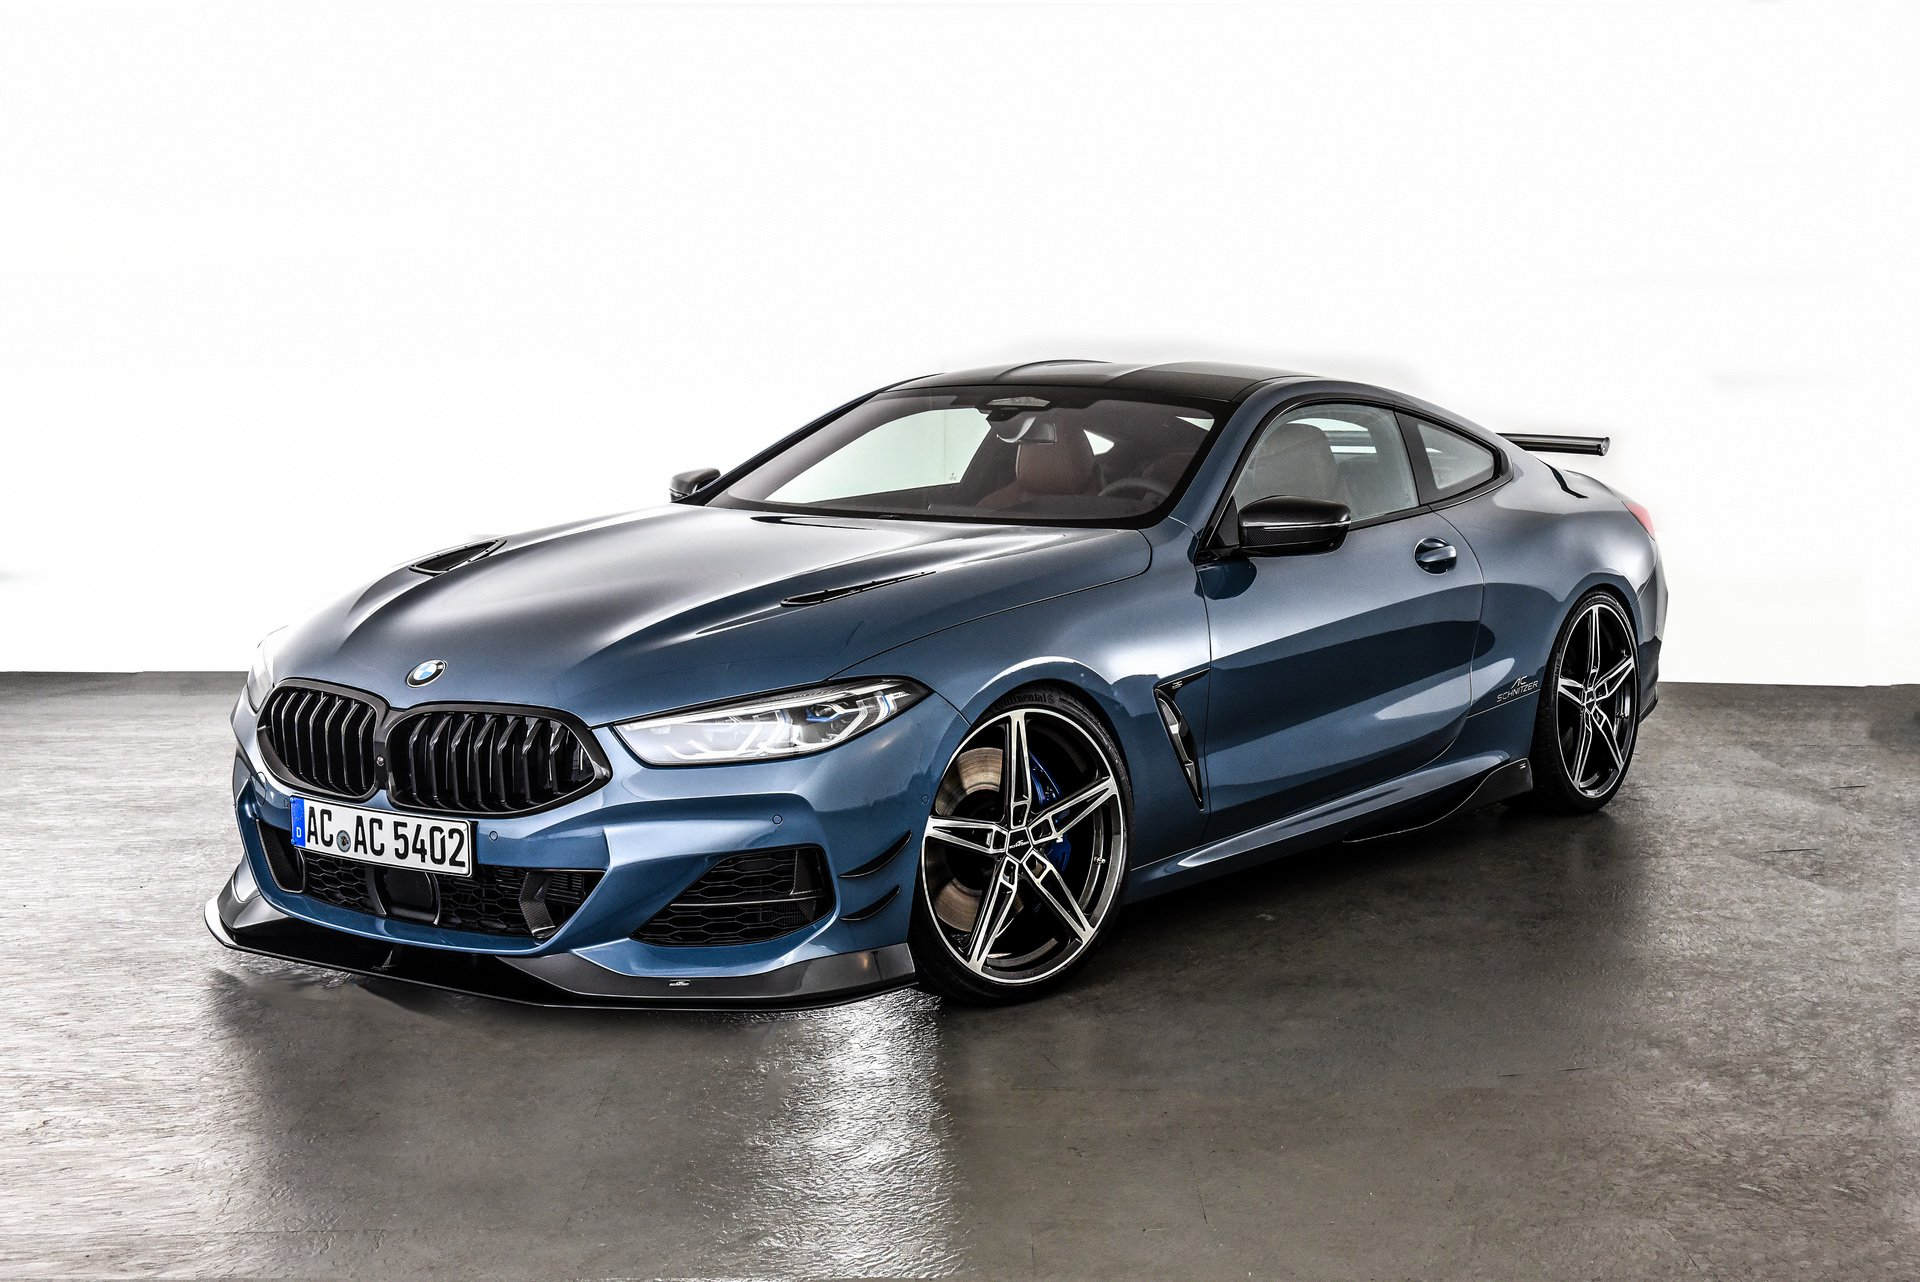 BMW M850i AC Schnitzer is the first!